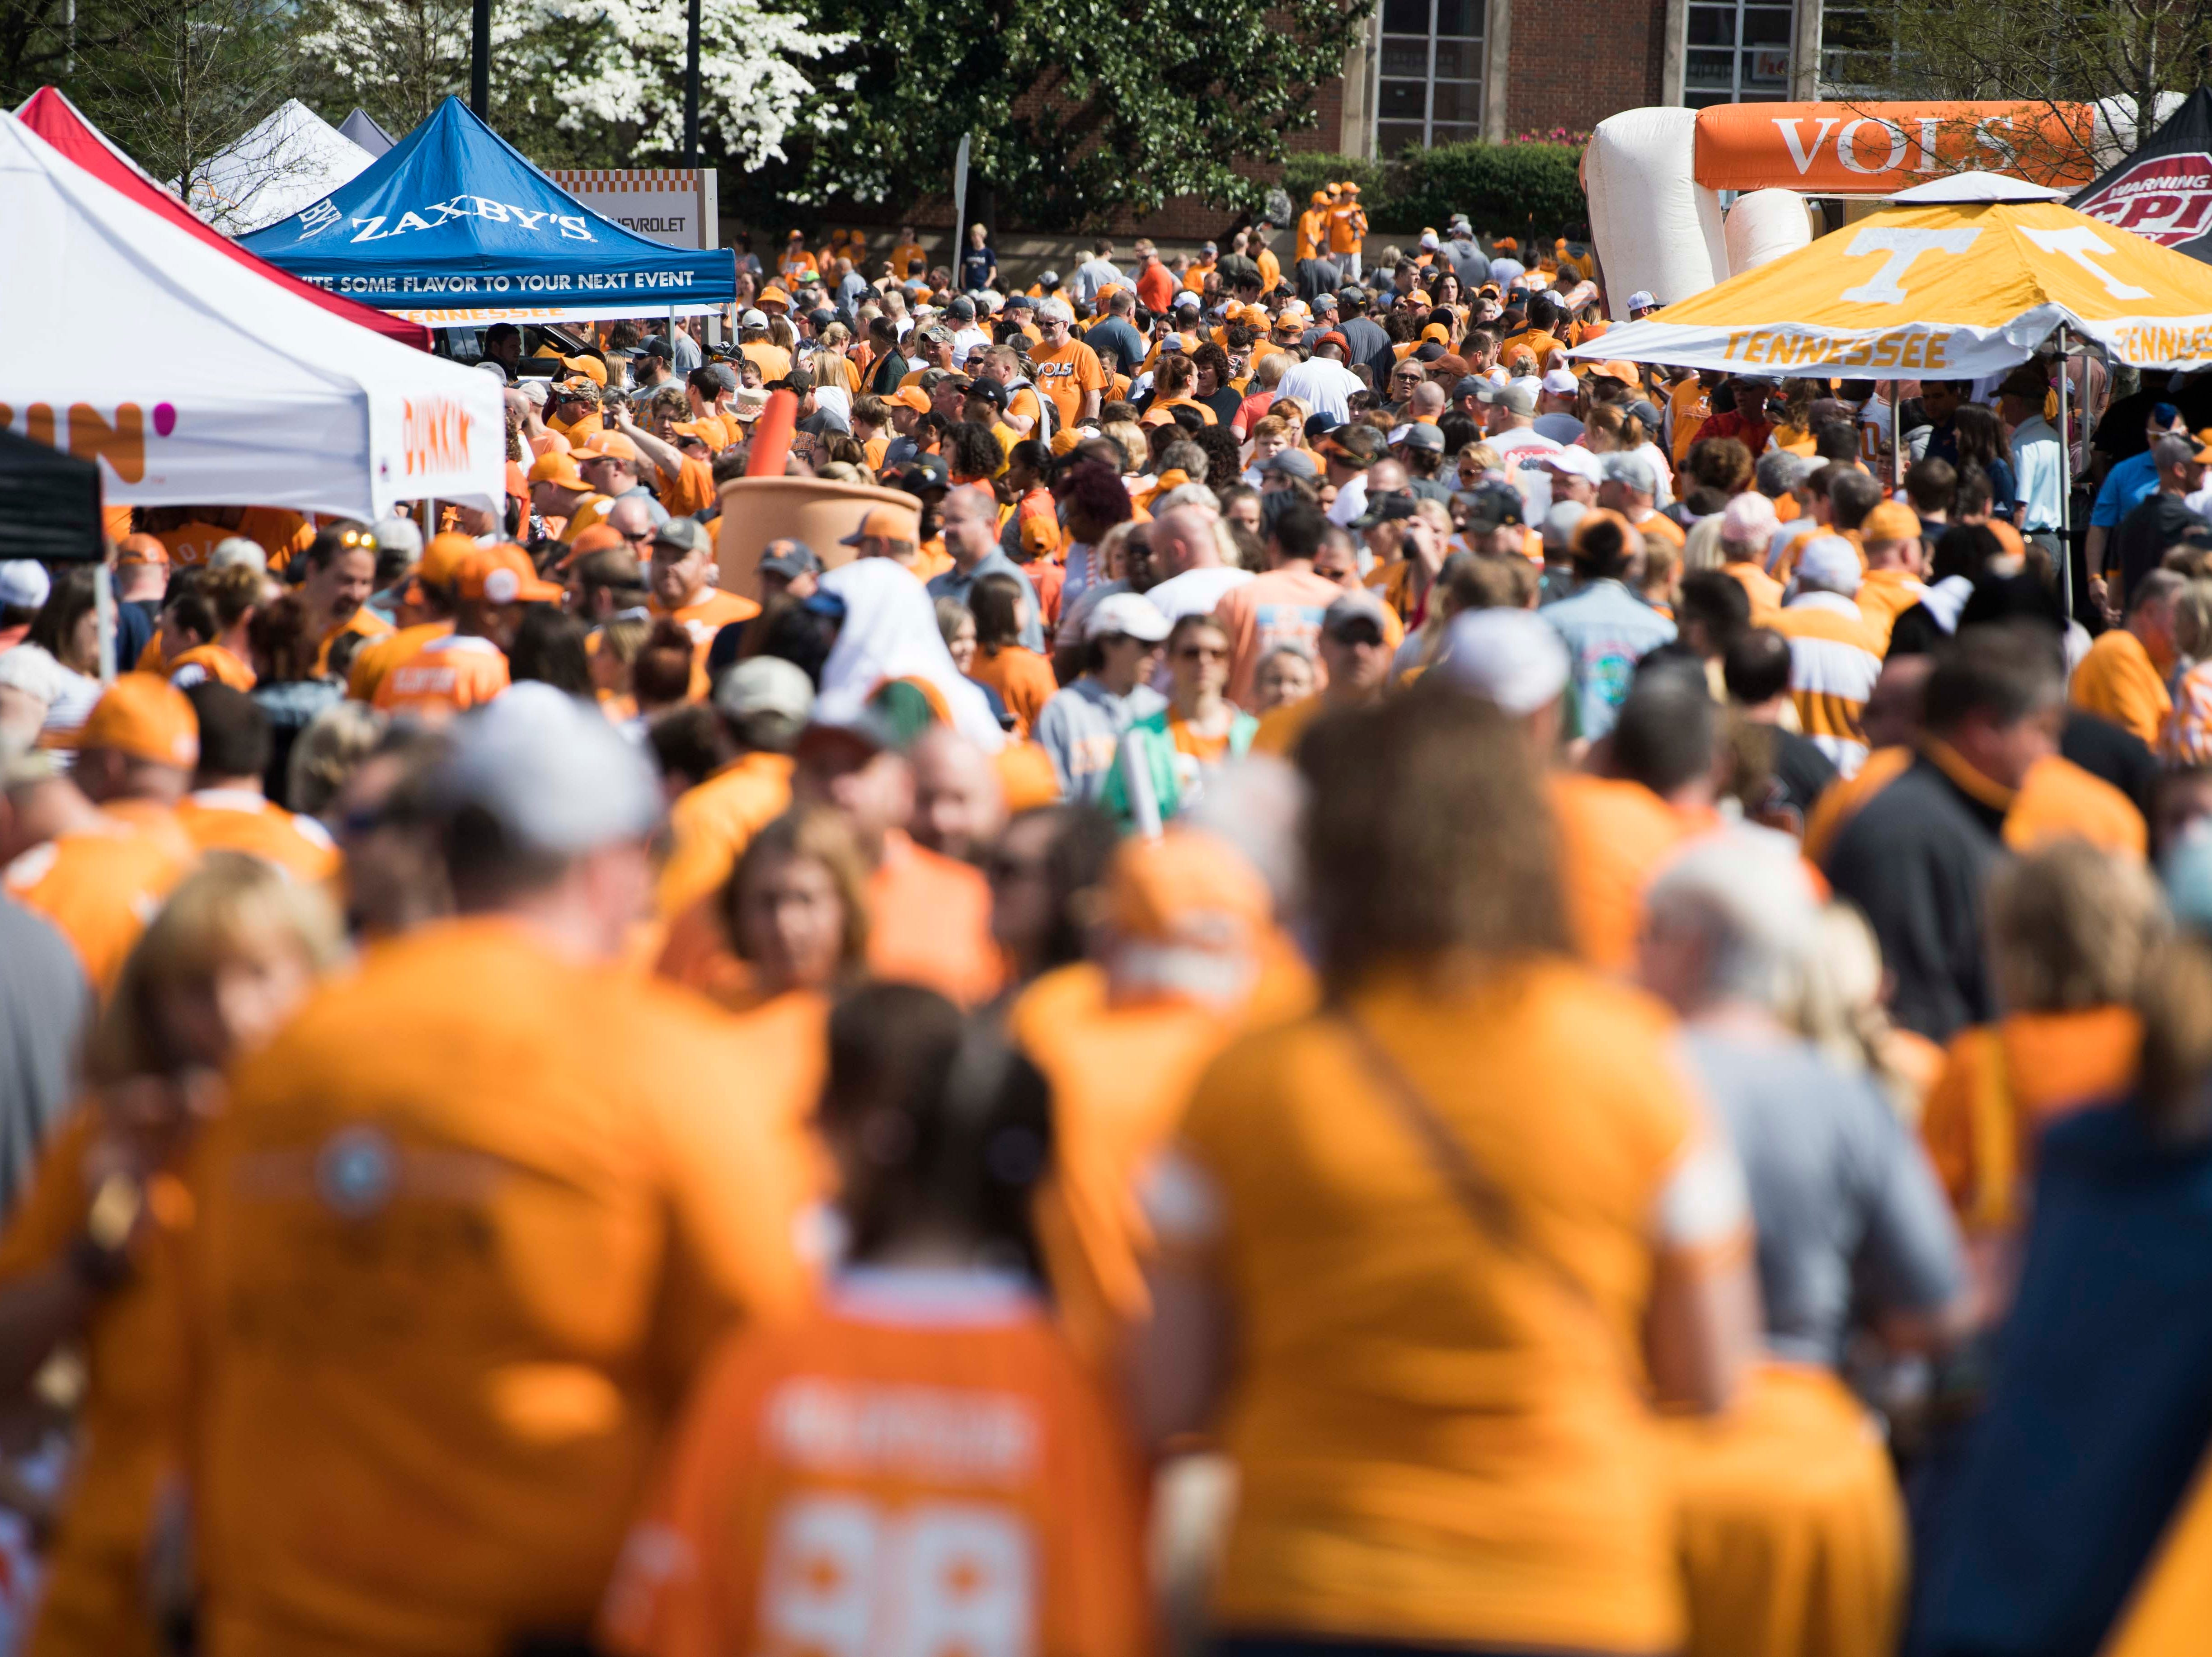 Fans wait for the Vols spring game to begin outside Neyland Stadium in Knoxville Saturday, April 13, 2019.